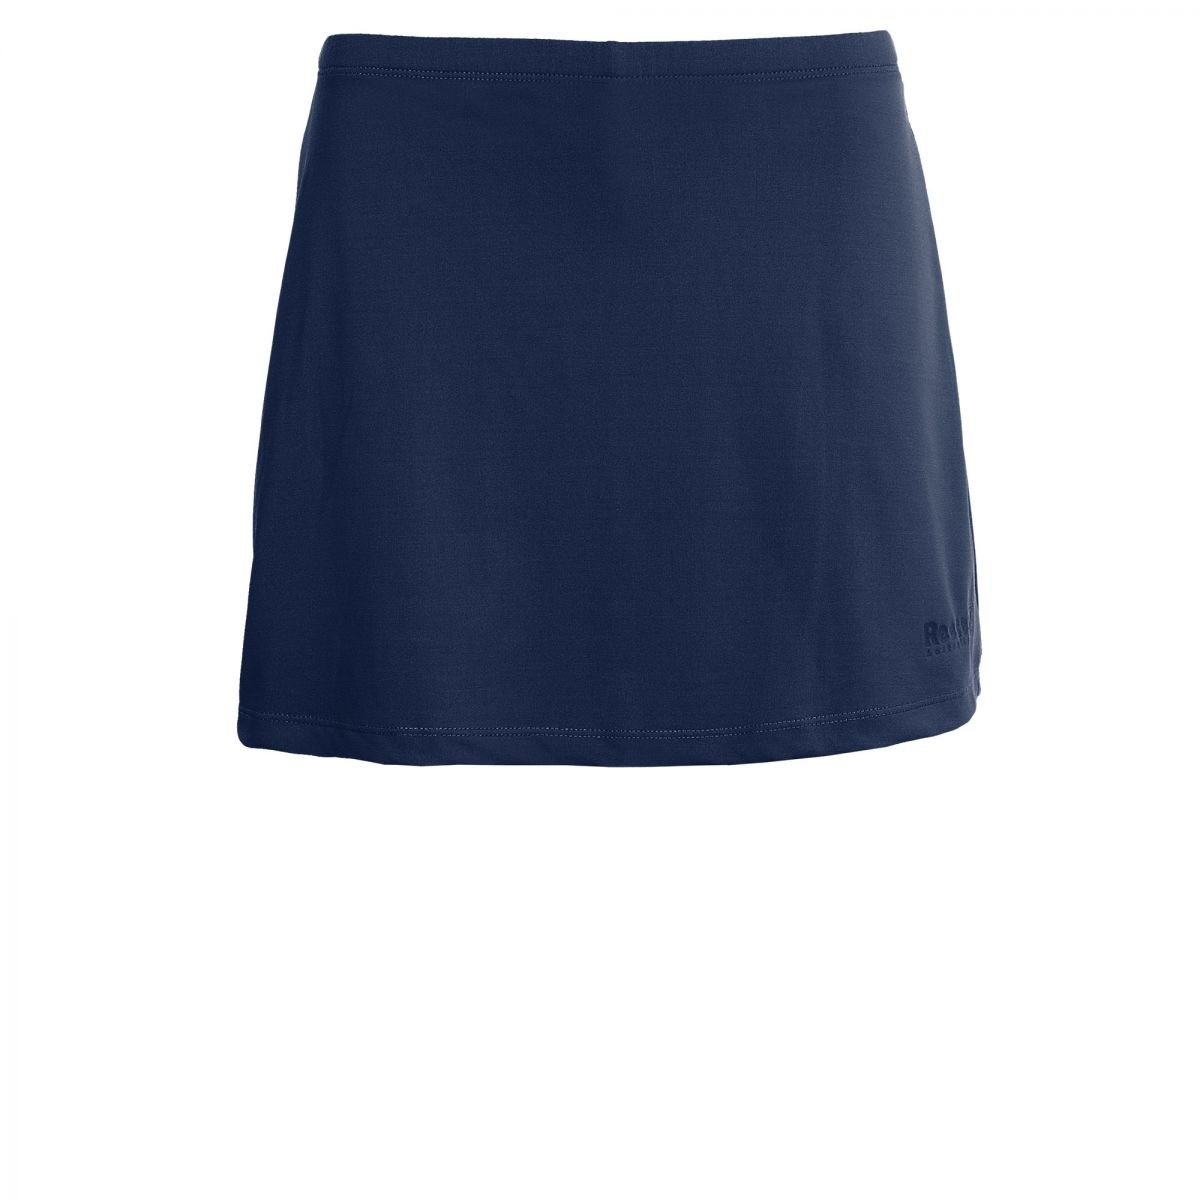 Reece Fundamental Skirt